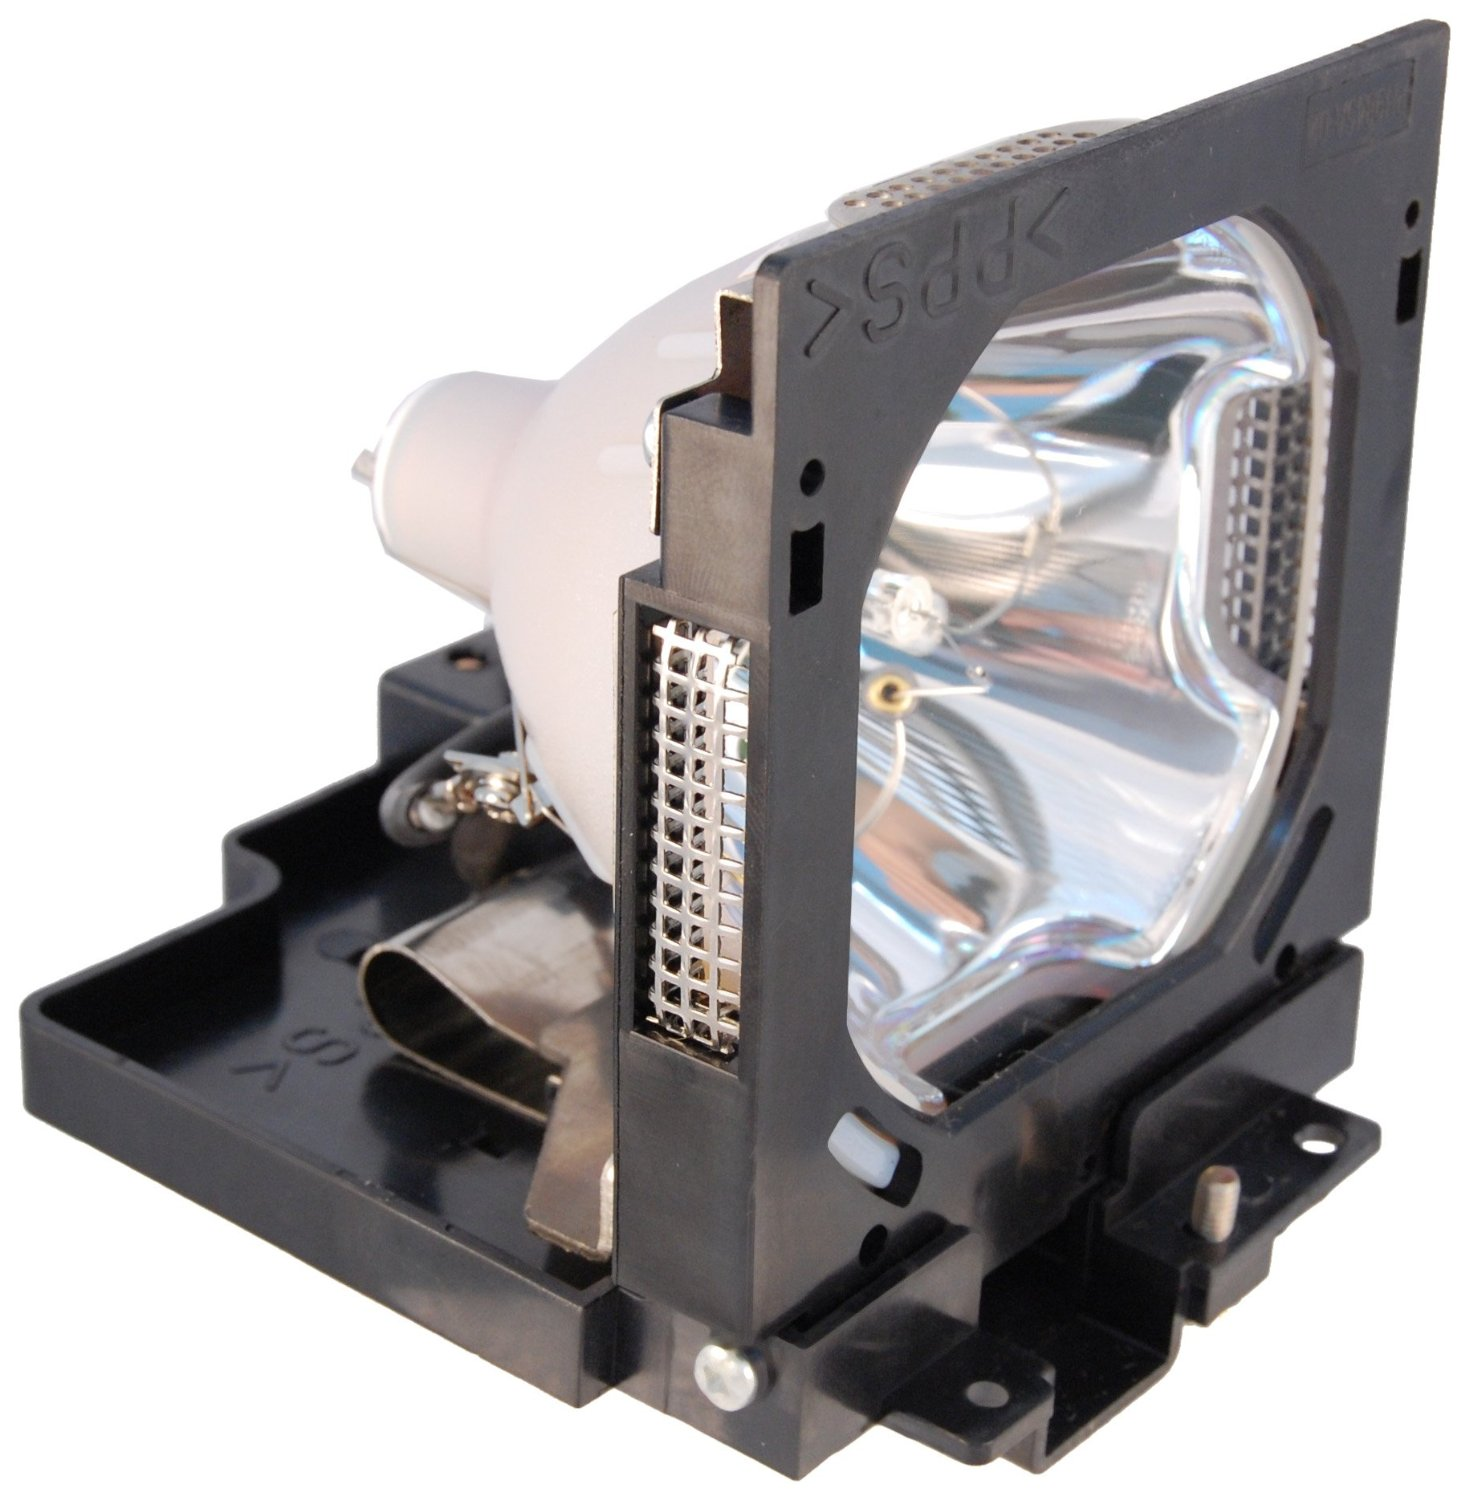 POA-LMP52 LMP52 610-3016047 for SANYO PLC-XF35 PLC-XF35L PLC-XF35N/Eiki LC-X5 LC-X5L/Christie LX65 Projector Lamp Bulb With CasePOA-LMP52 LMP52 610-3016047 for SANYO PLC-XF35 PLC-XF35L PLC-XF35N/Eiki LC-X5 LC-X5L/Christie LX65 Projector Lamp Bulb With Case